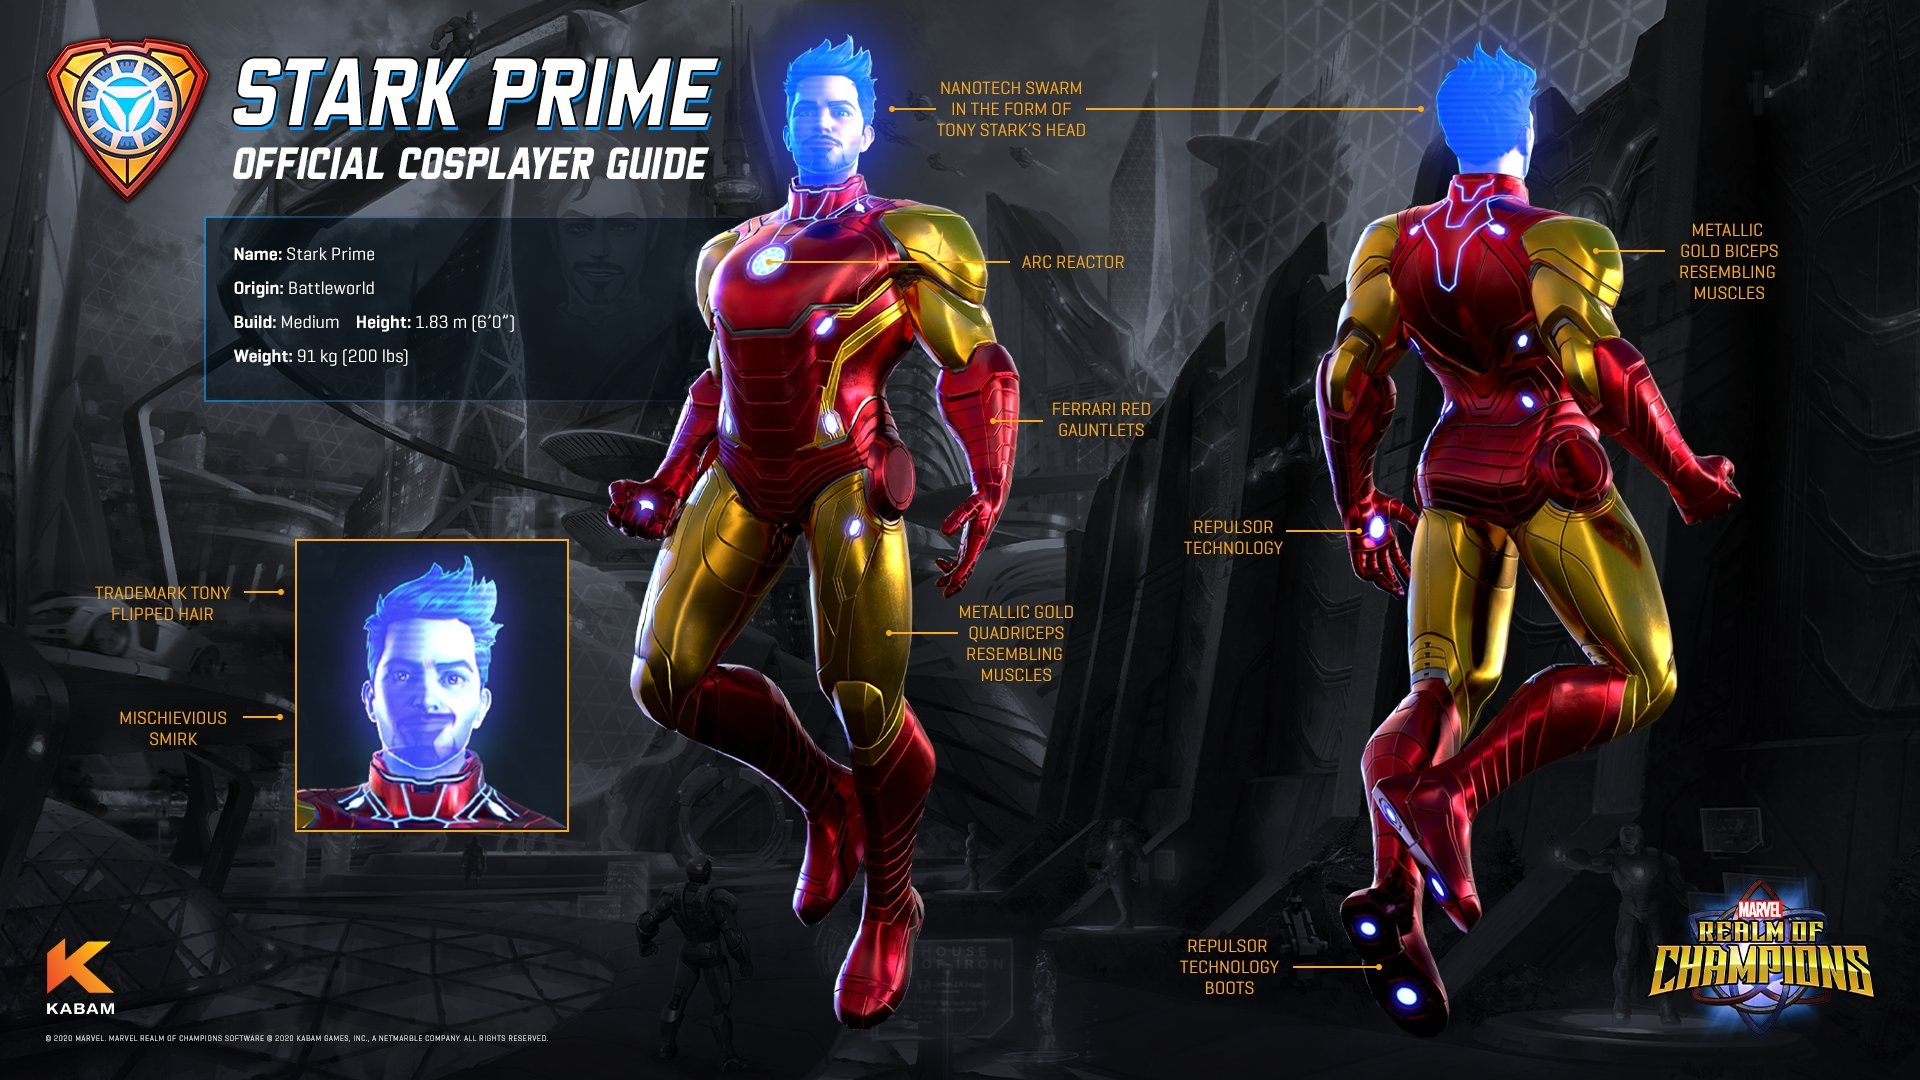 Marvel Realm of Champions Stark Prime Official Cosplayer Guide.jpg